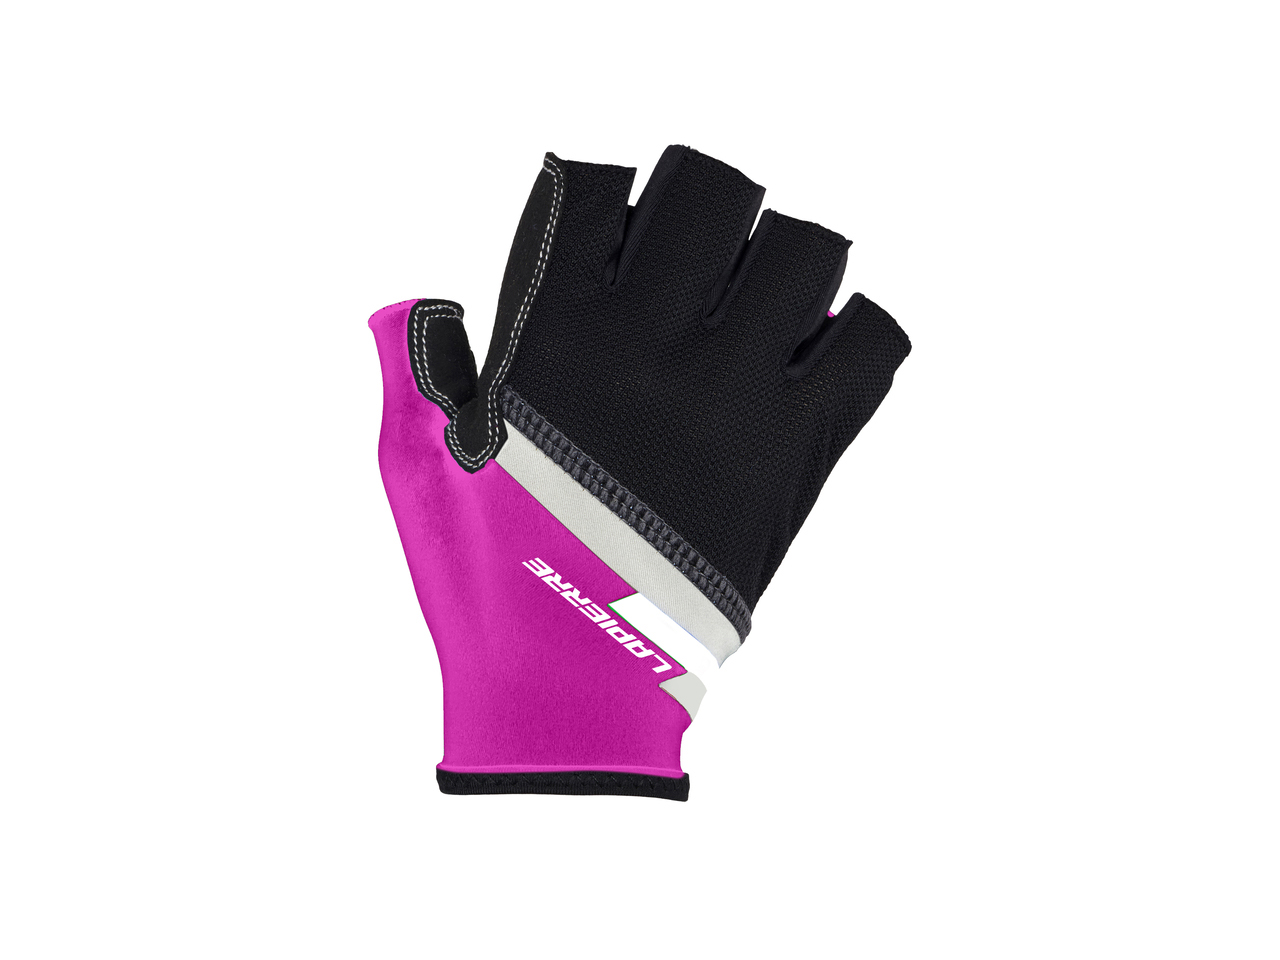 Lapierre Madeleine women's cycling gloves - front